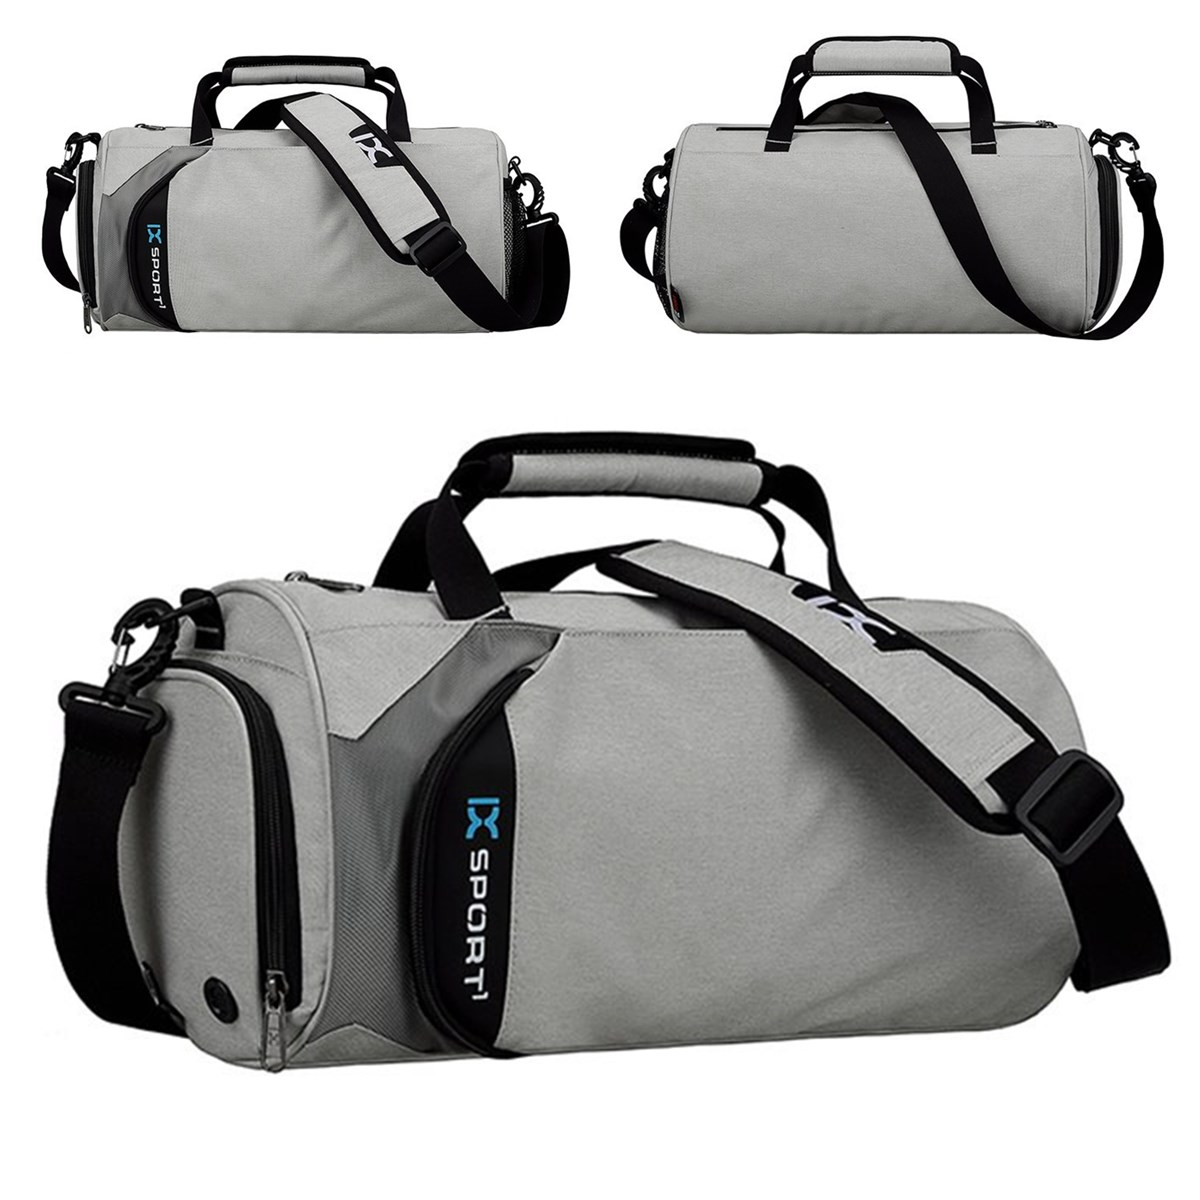 0aaf1081cee4 Details about Men Waterproof Nylon Fitness Holdall Sport Gym Bag Travel  Duffel Luggage Bags